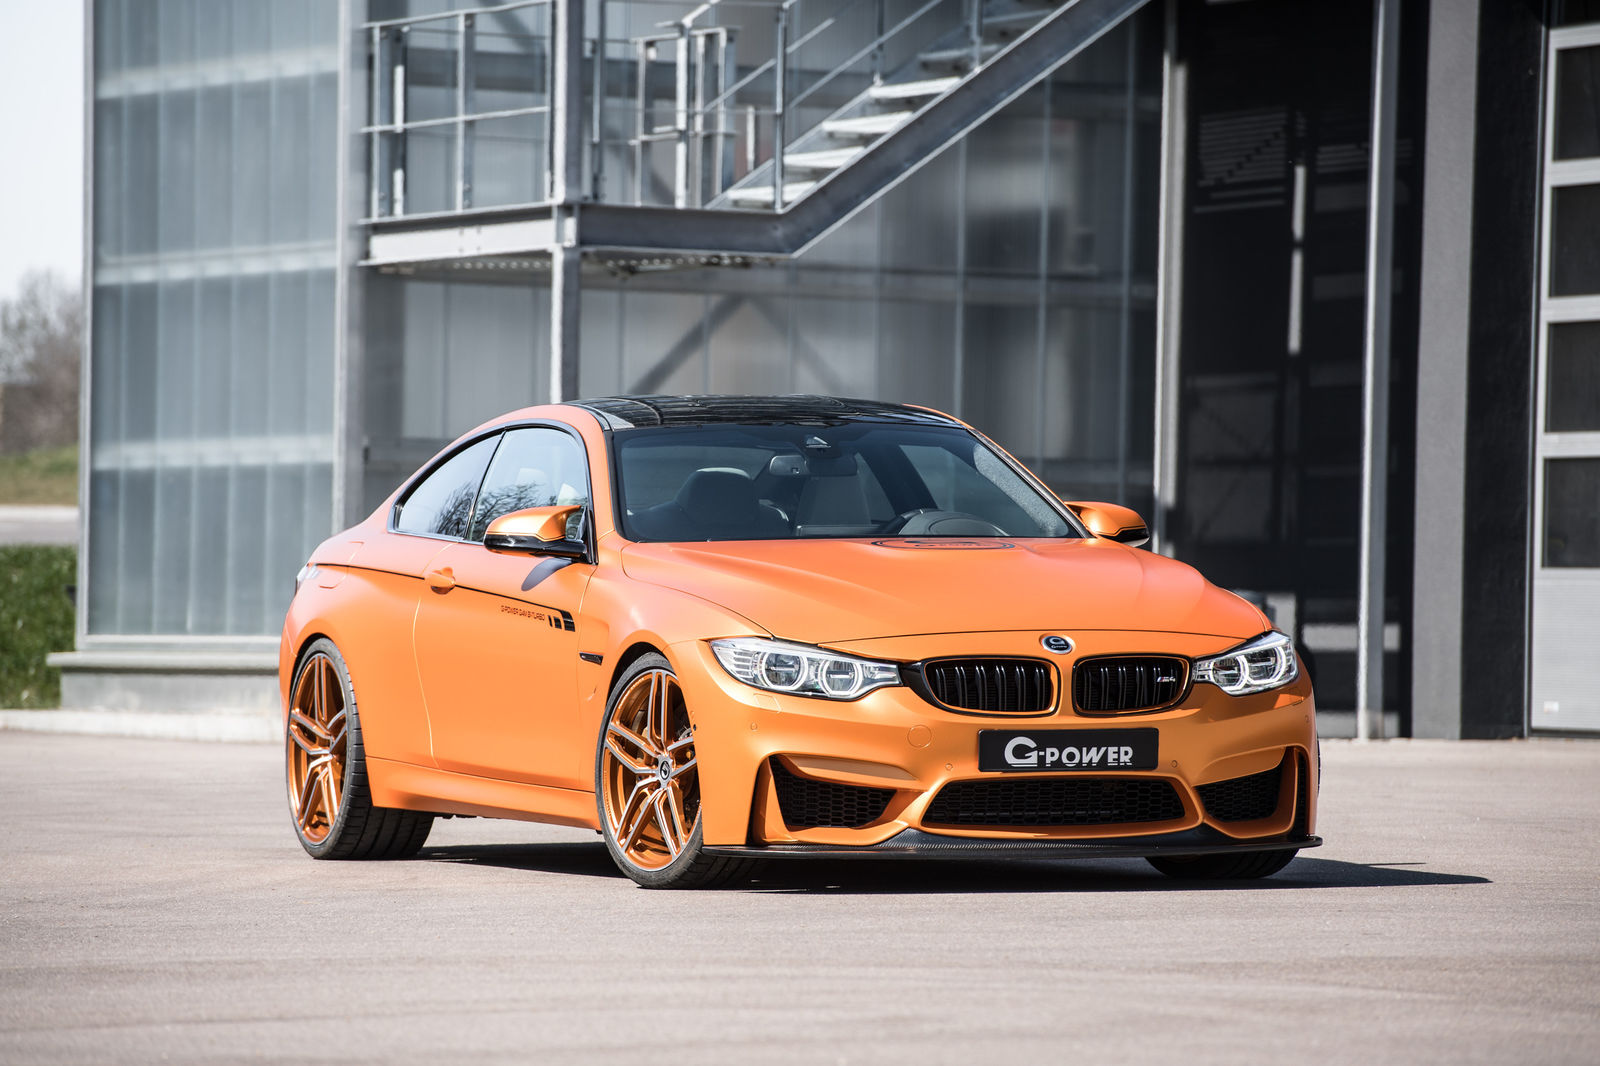 2017 Bmw M4 By G Power Top Speed